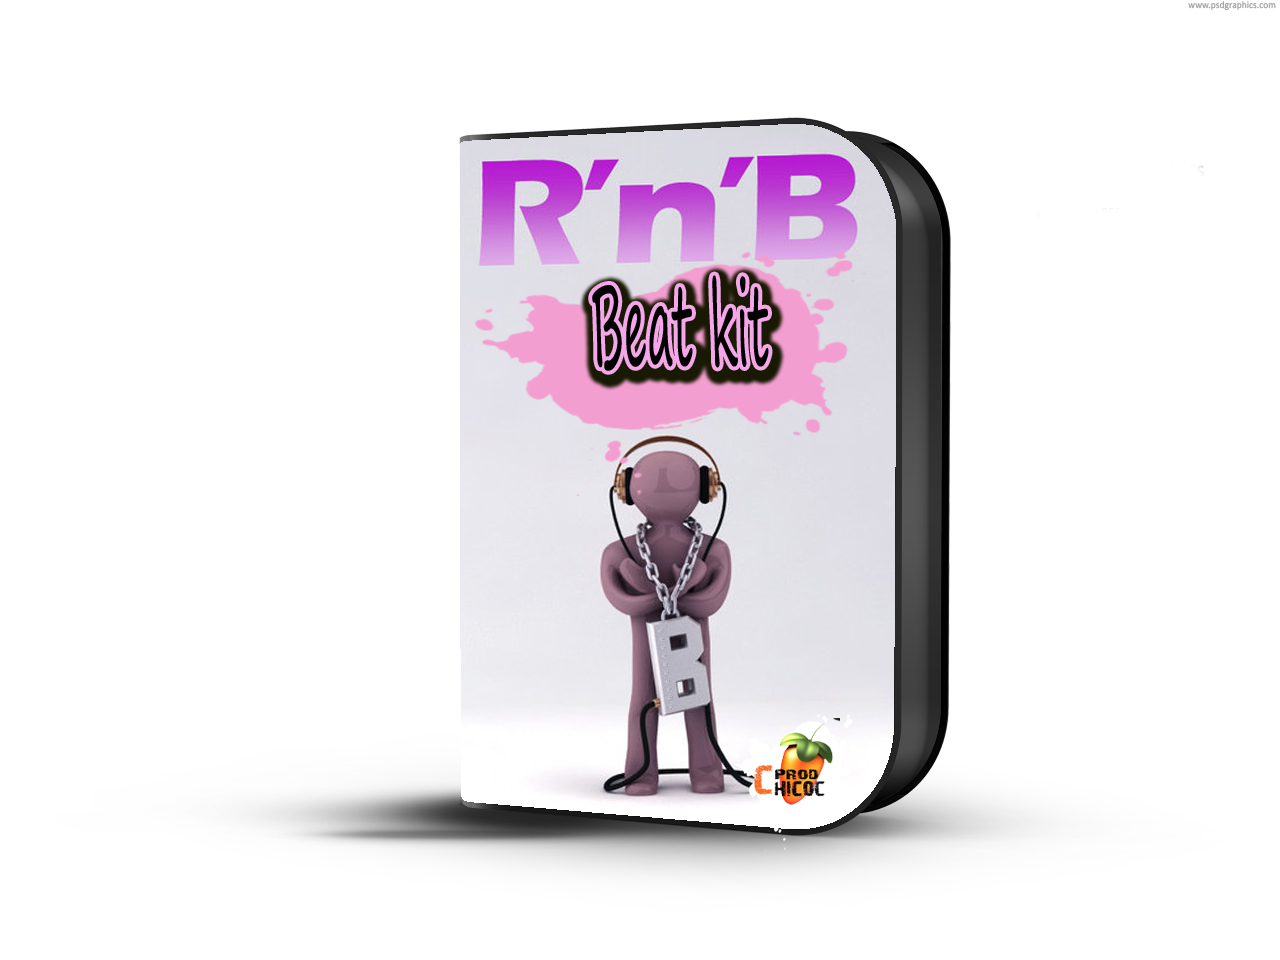 R&B Beat Kit,FL STUDIO 10, MASCHINE SAMPLES, R&B DRUM KIT, R&B SAMPLES, TRAP DRUMS, TRAP LOOPS